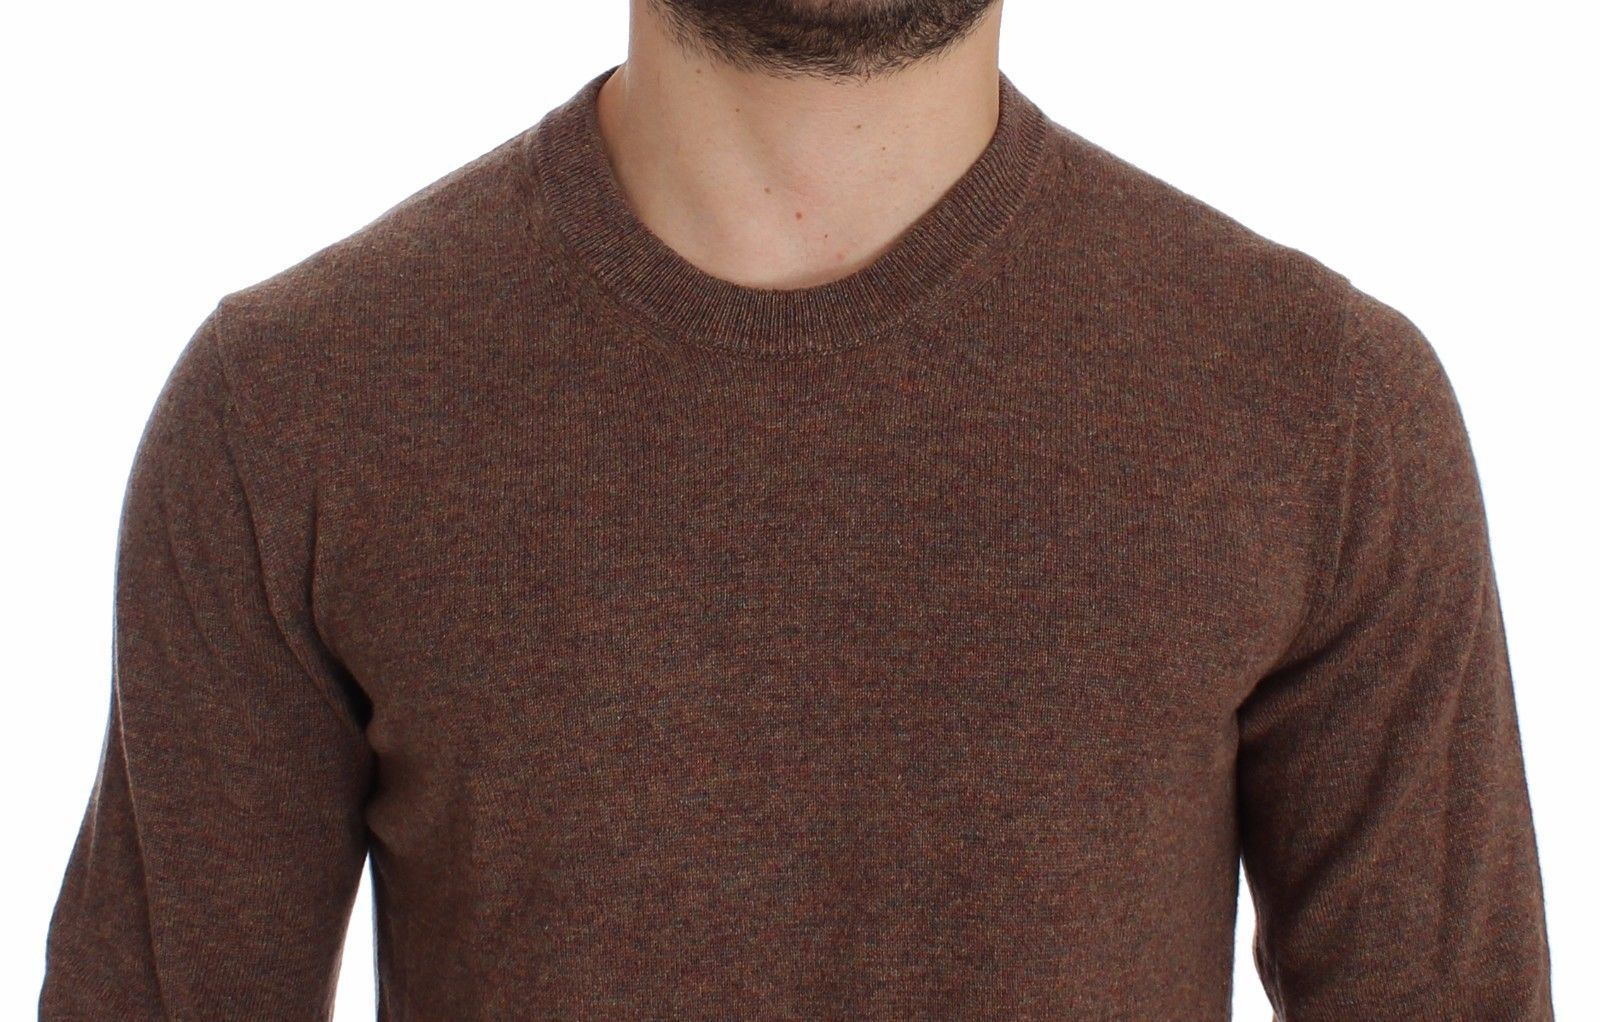 Dolce & Gabbana Brown Cashmere Crew-neck Sweater Pullover Top 14816